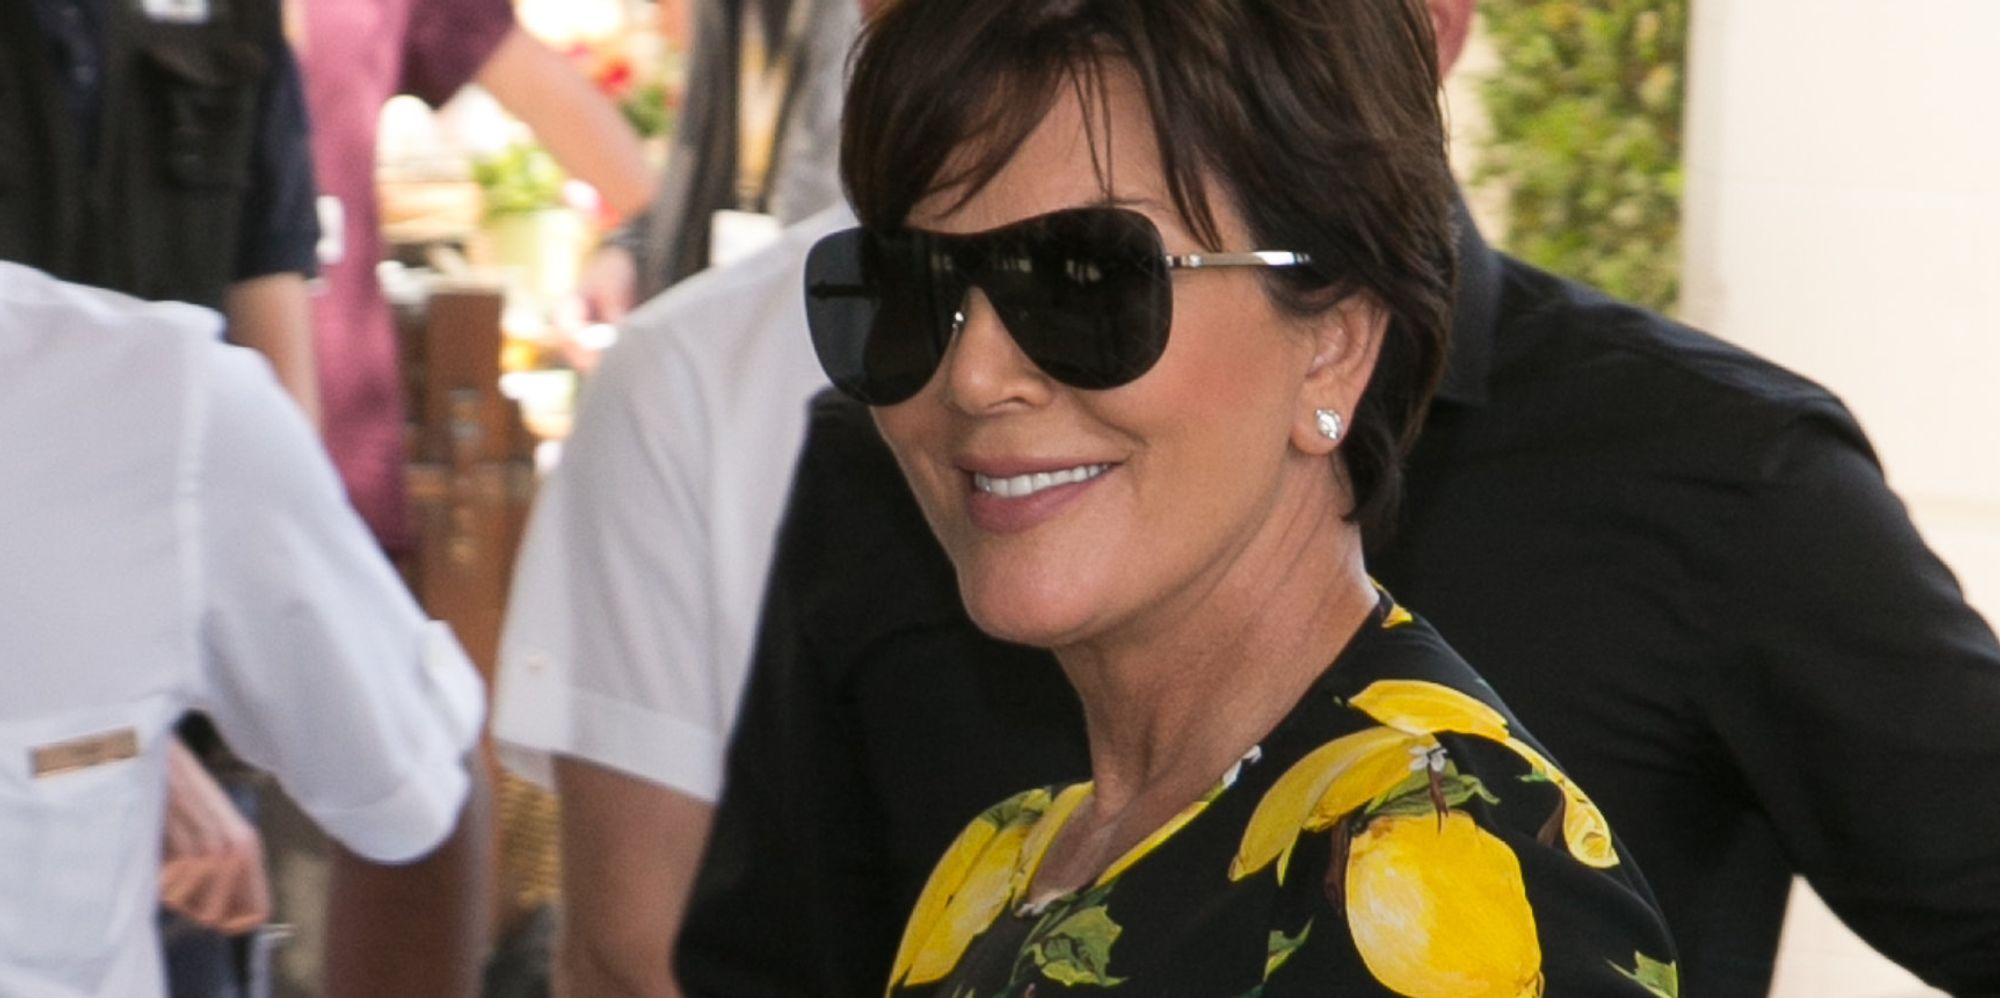 Kris Jenner And Penelope Disick Had The Cutest Grandma And Me Moment